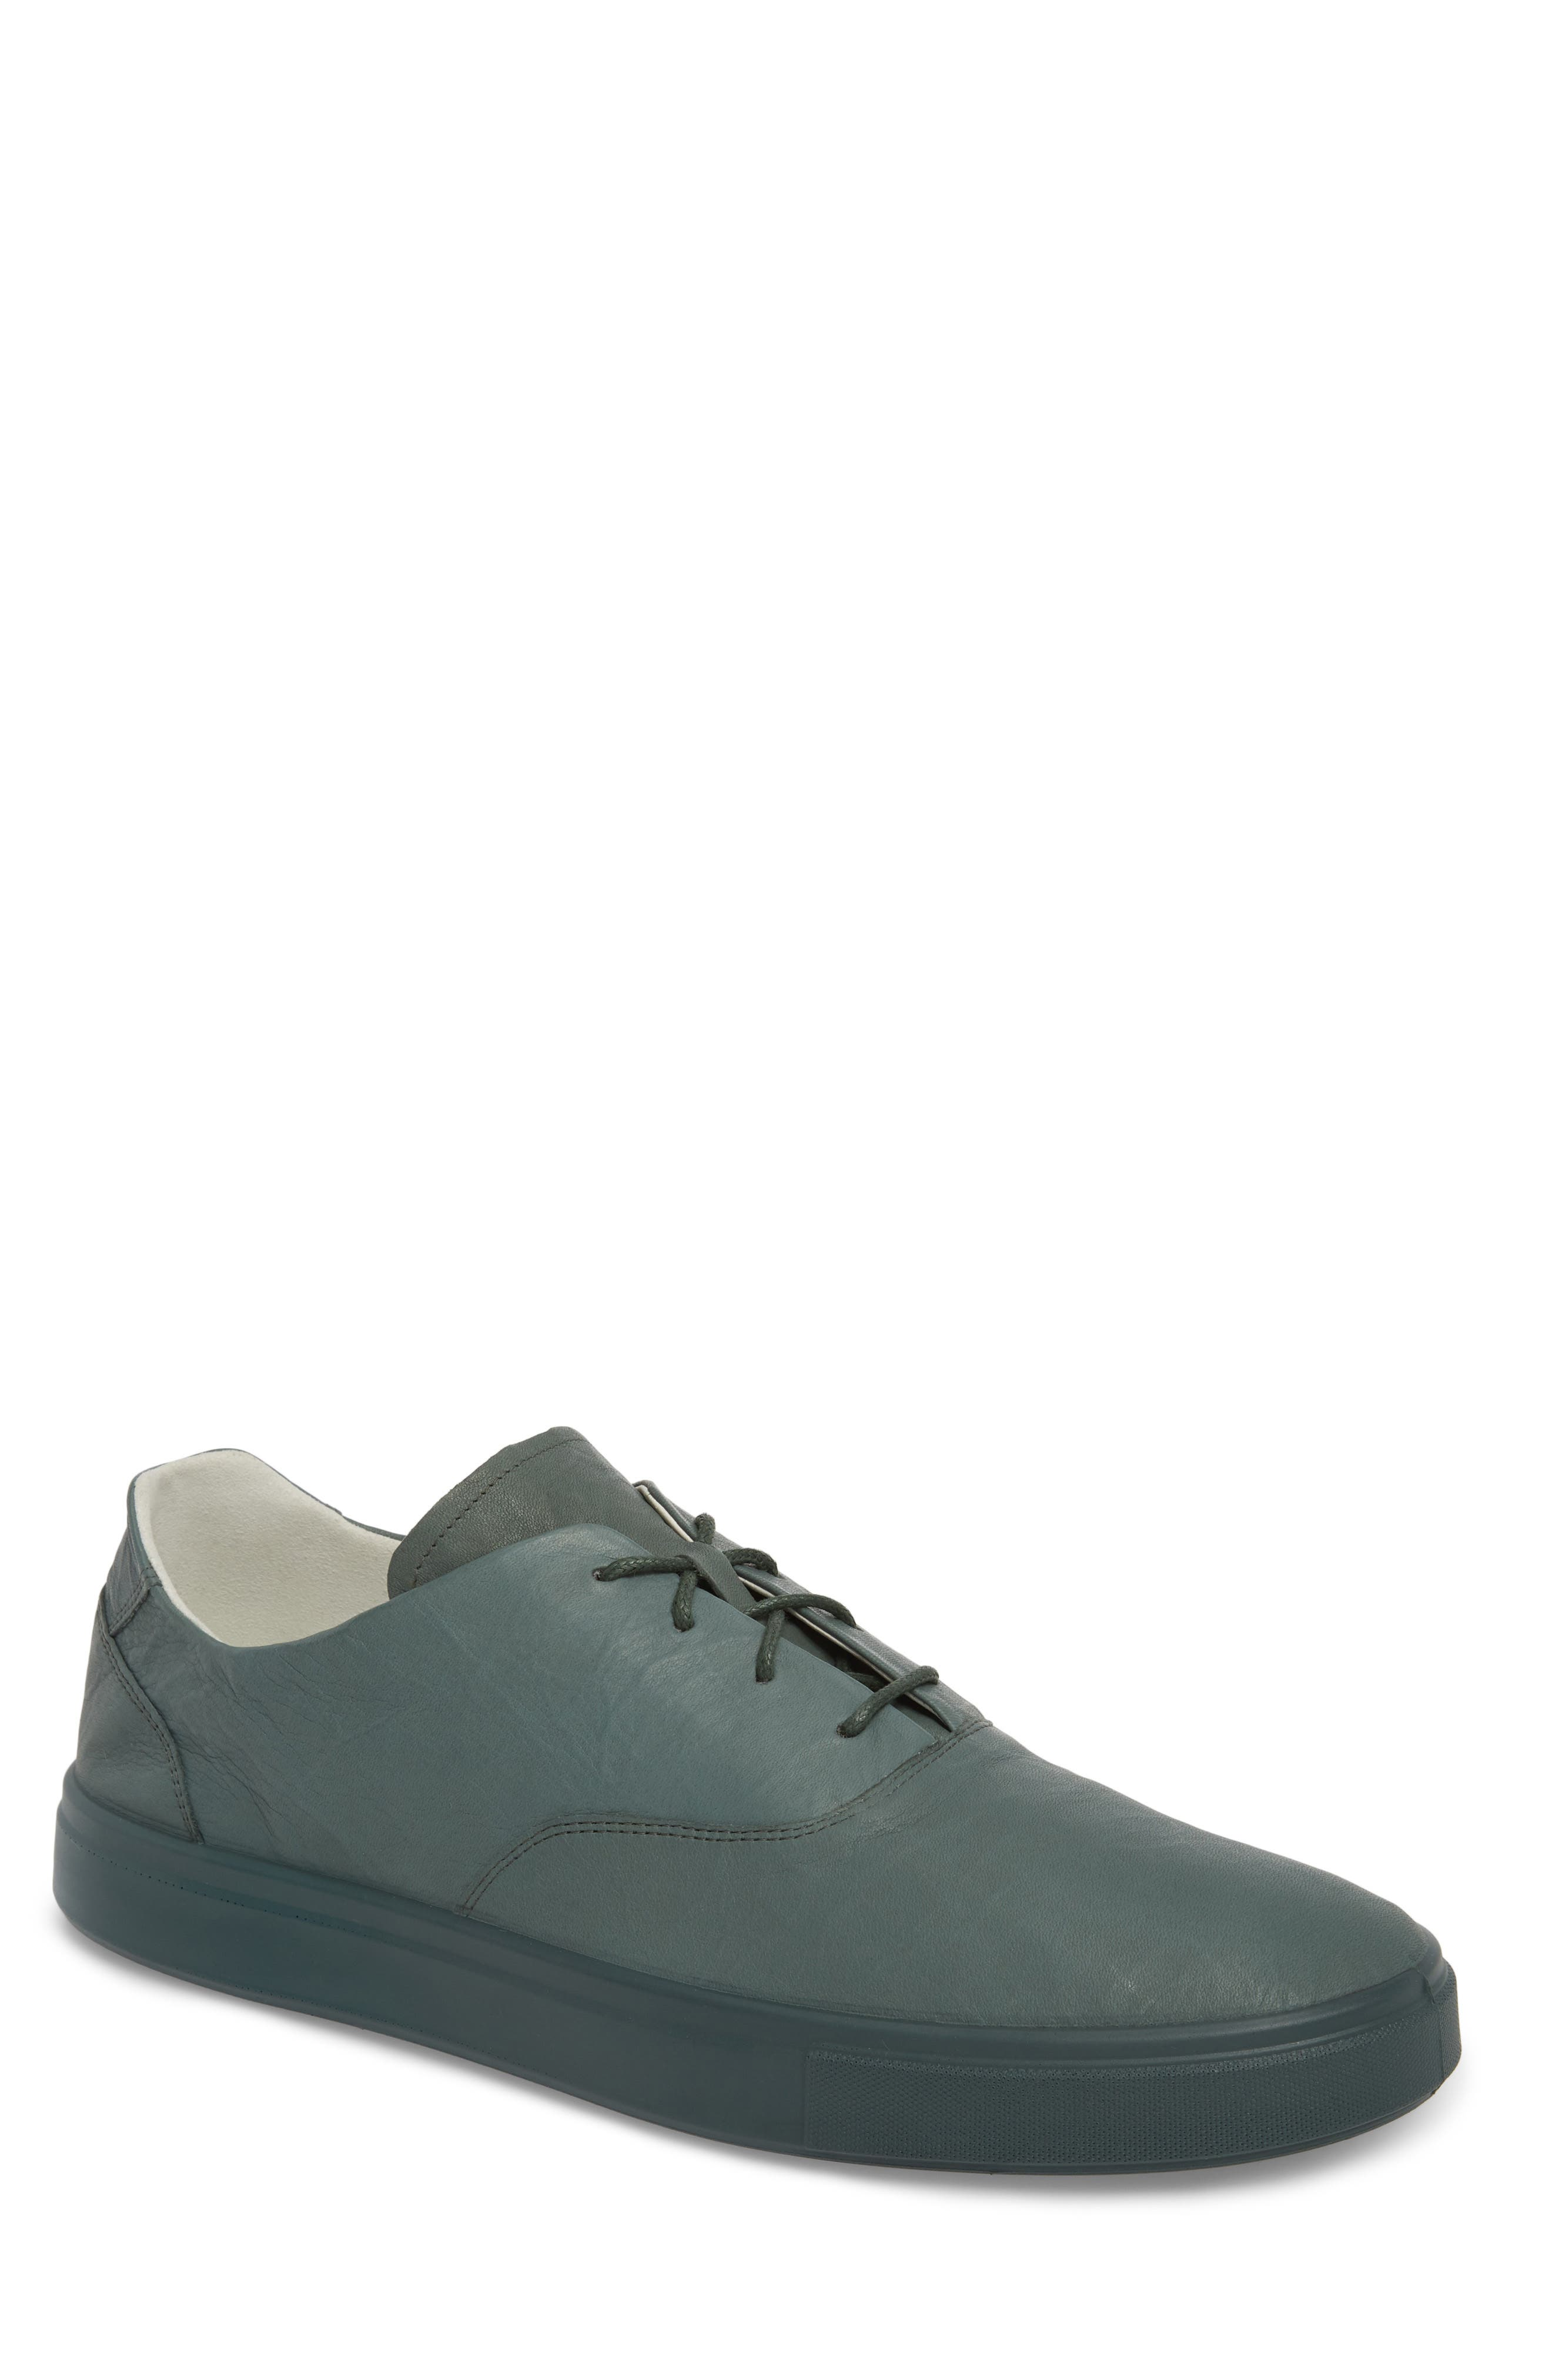 Kyle Low Top Sneaker,                             Main thumbnail 1, color,                             Military Sage Leather